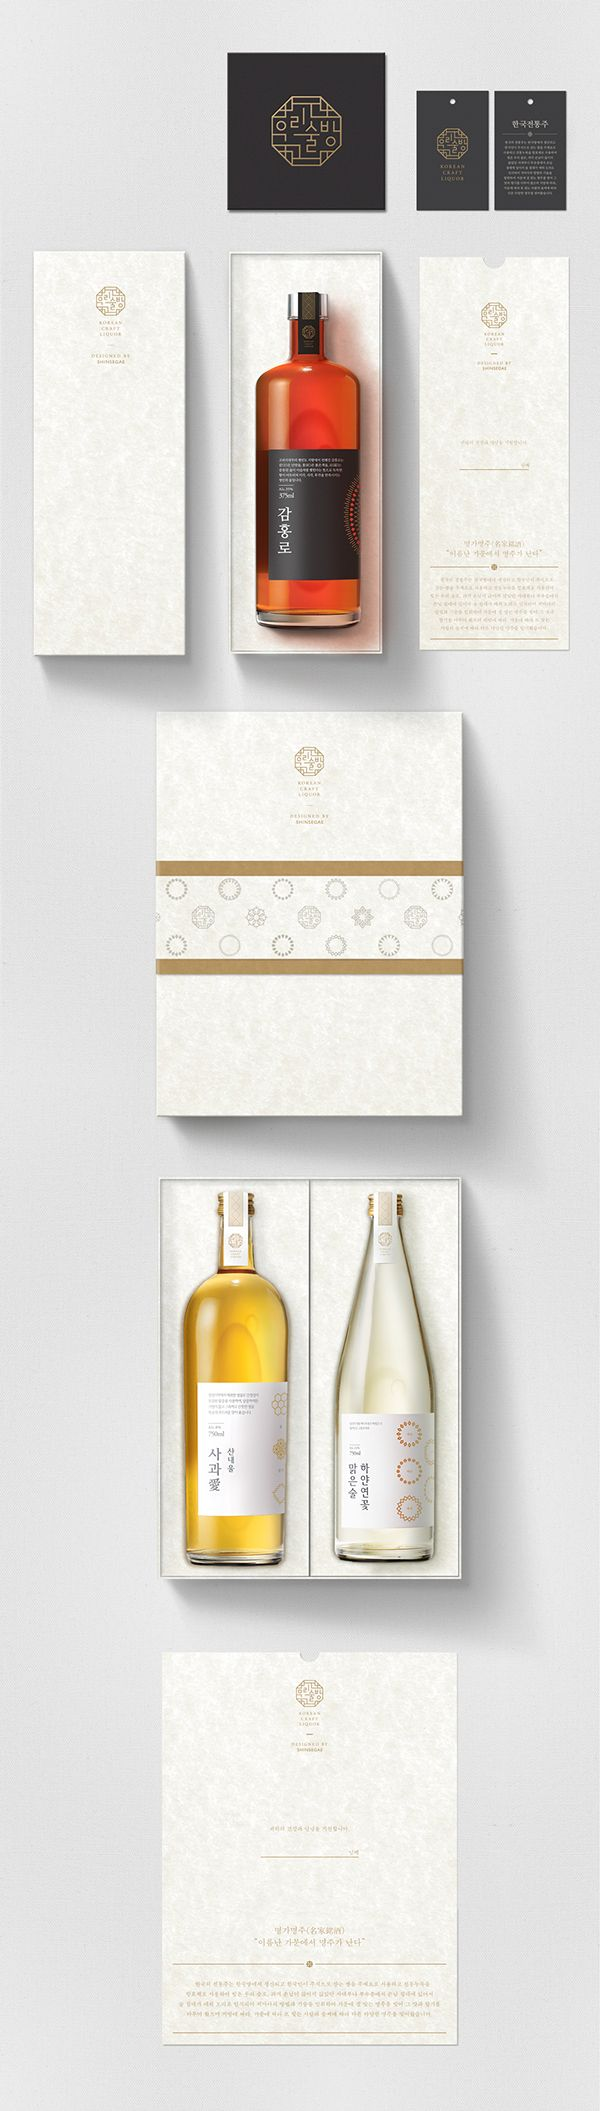 Korean Craft Liquor Brand & Bottle, Packaging Design